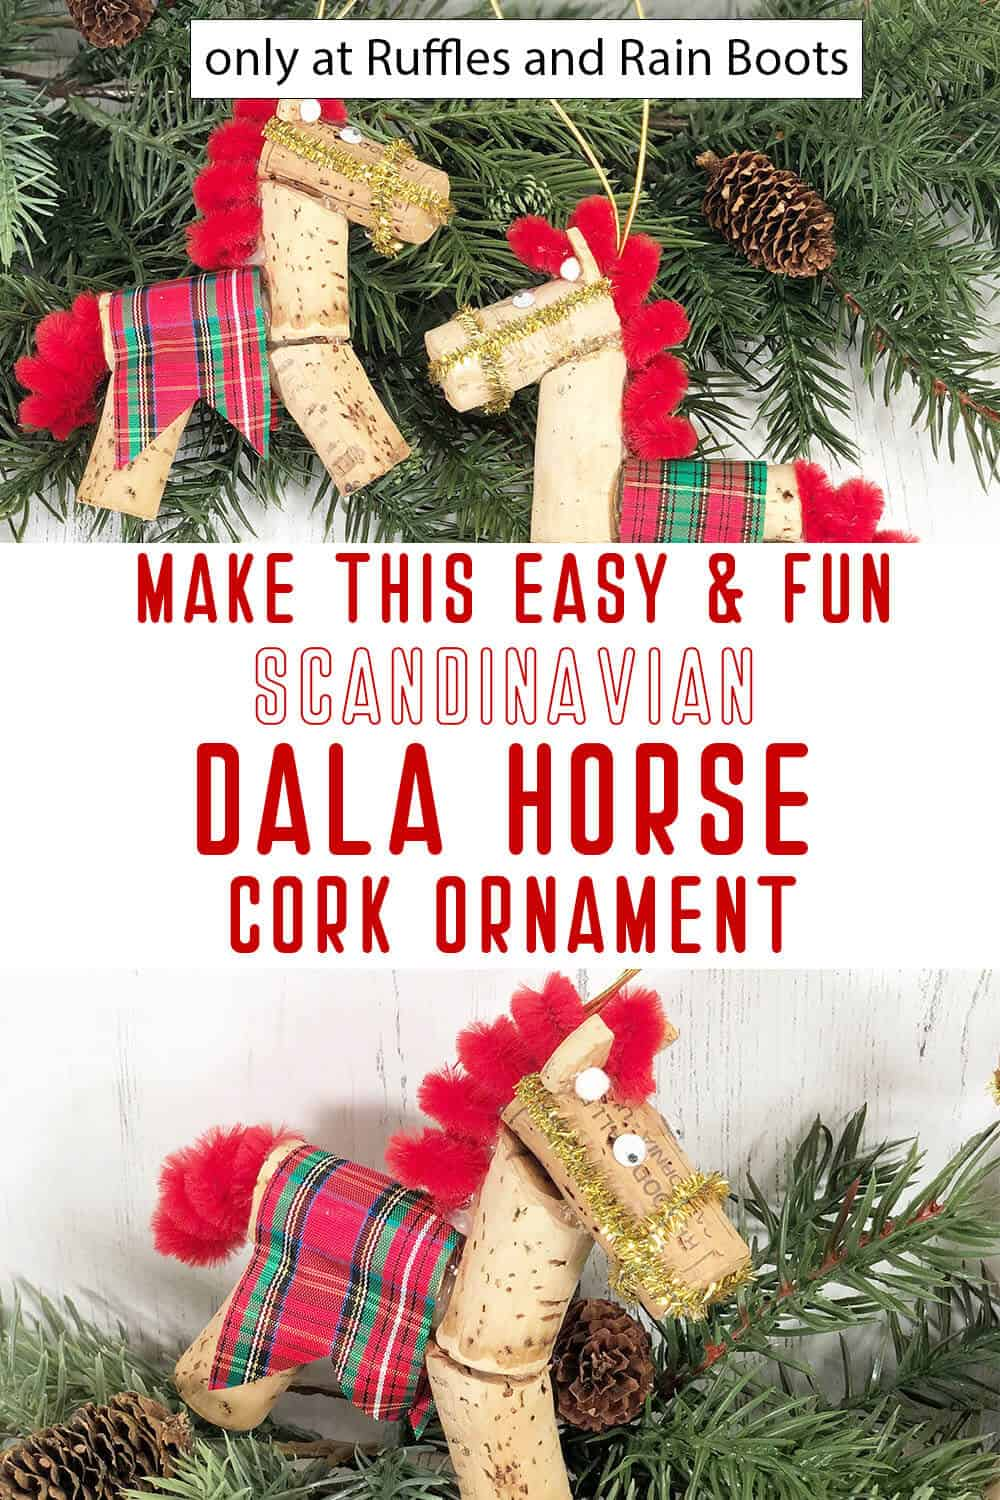 DIY scandinavian horse ornament with text which reads make this easy & fun scandinavian dala hors cork ornament